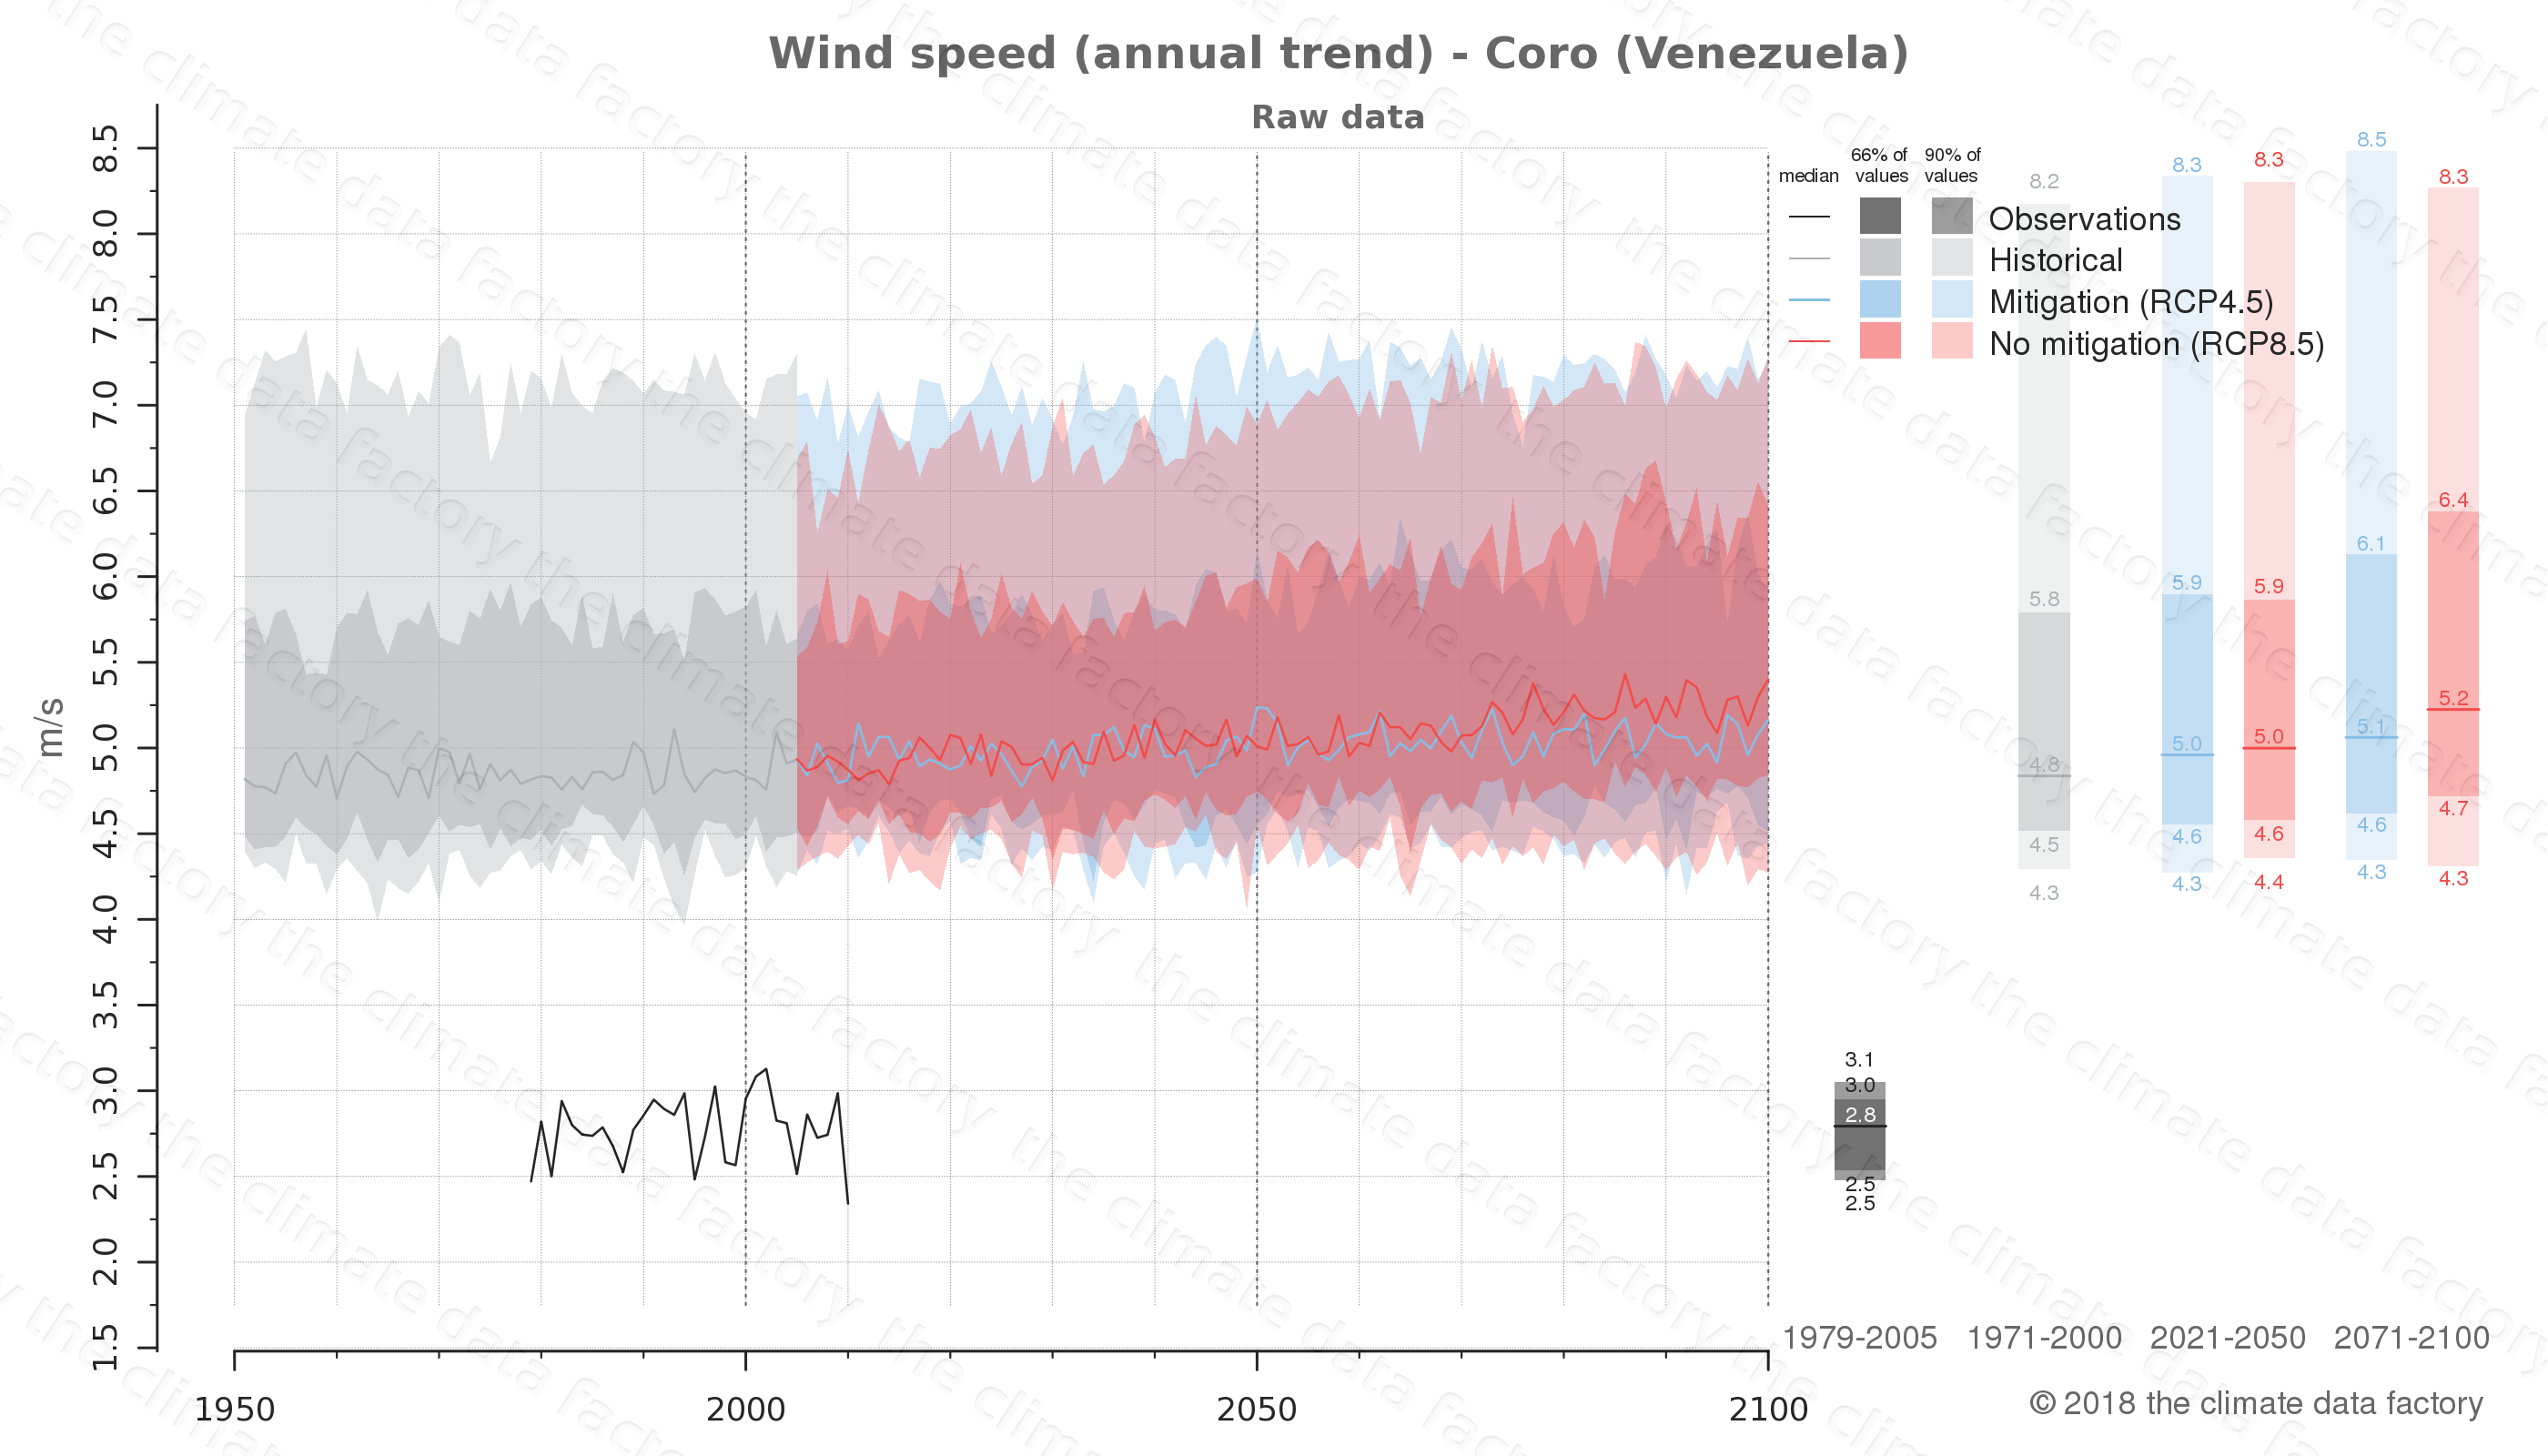 climate change data policy adaptation climate graph city data wind-speed coro venezuela